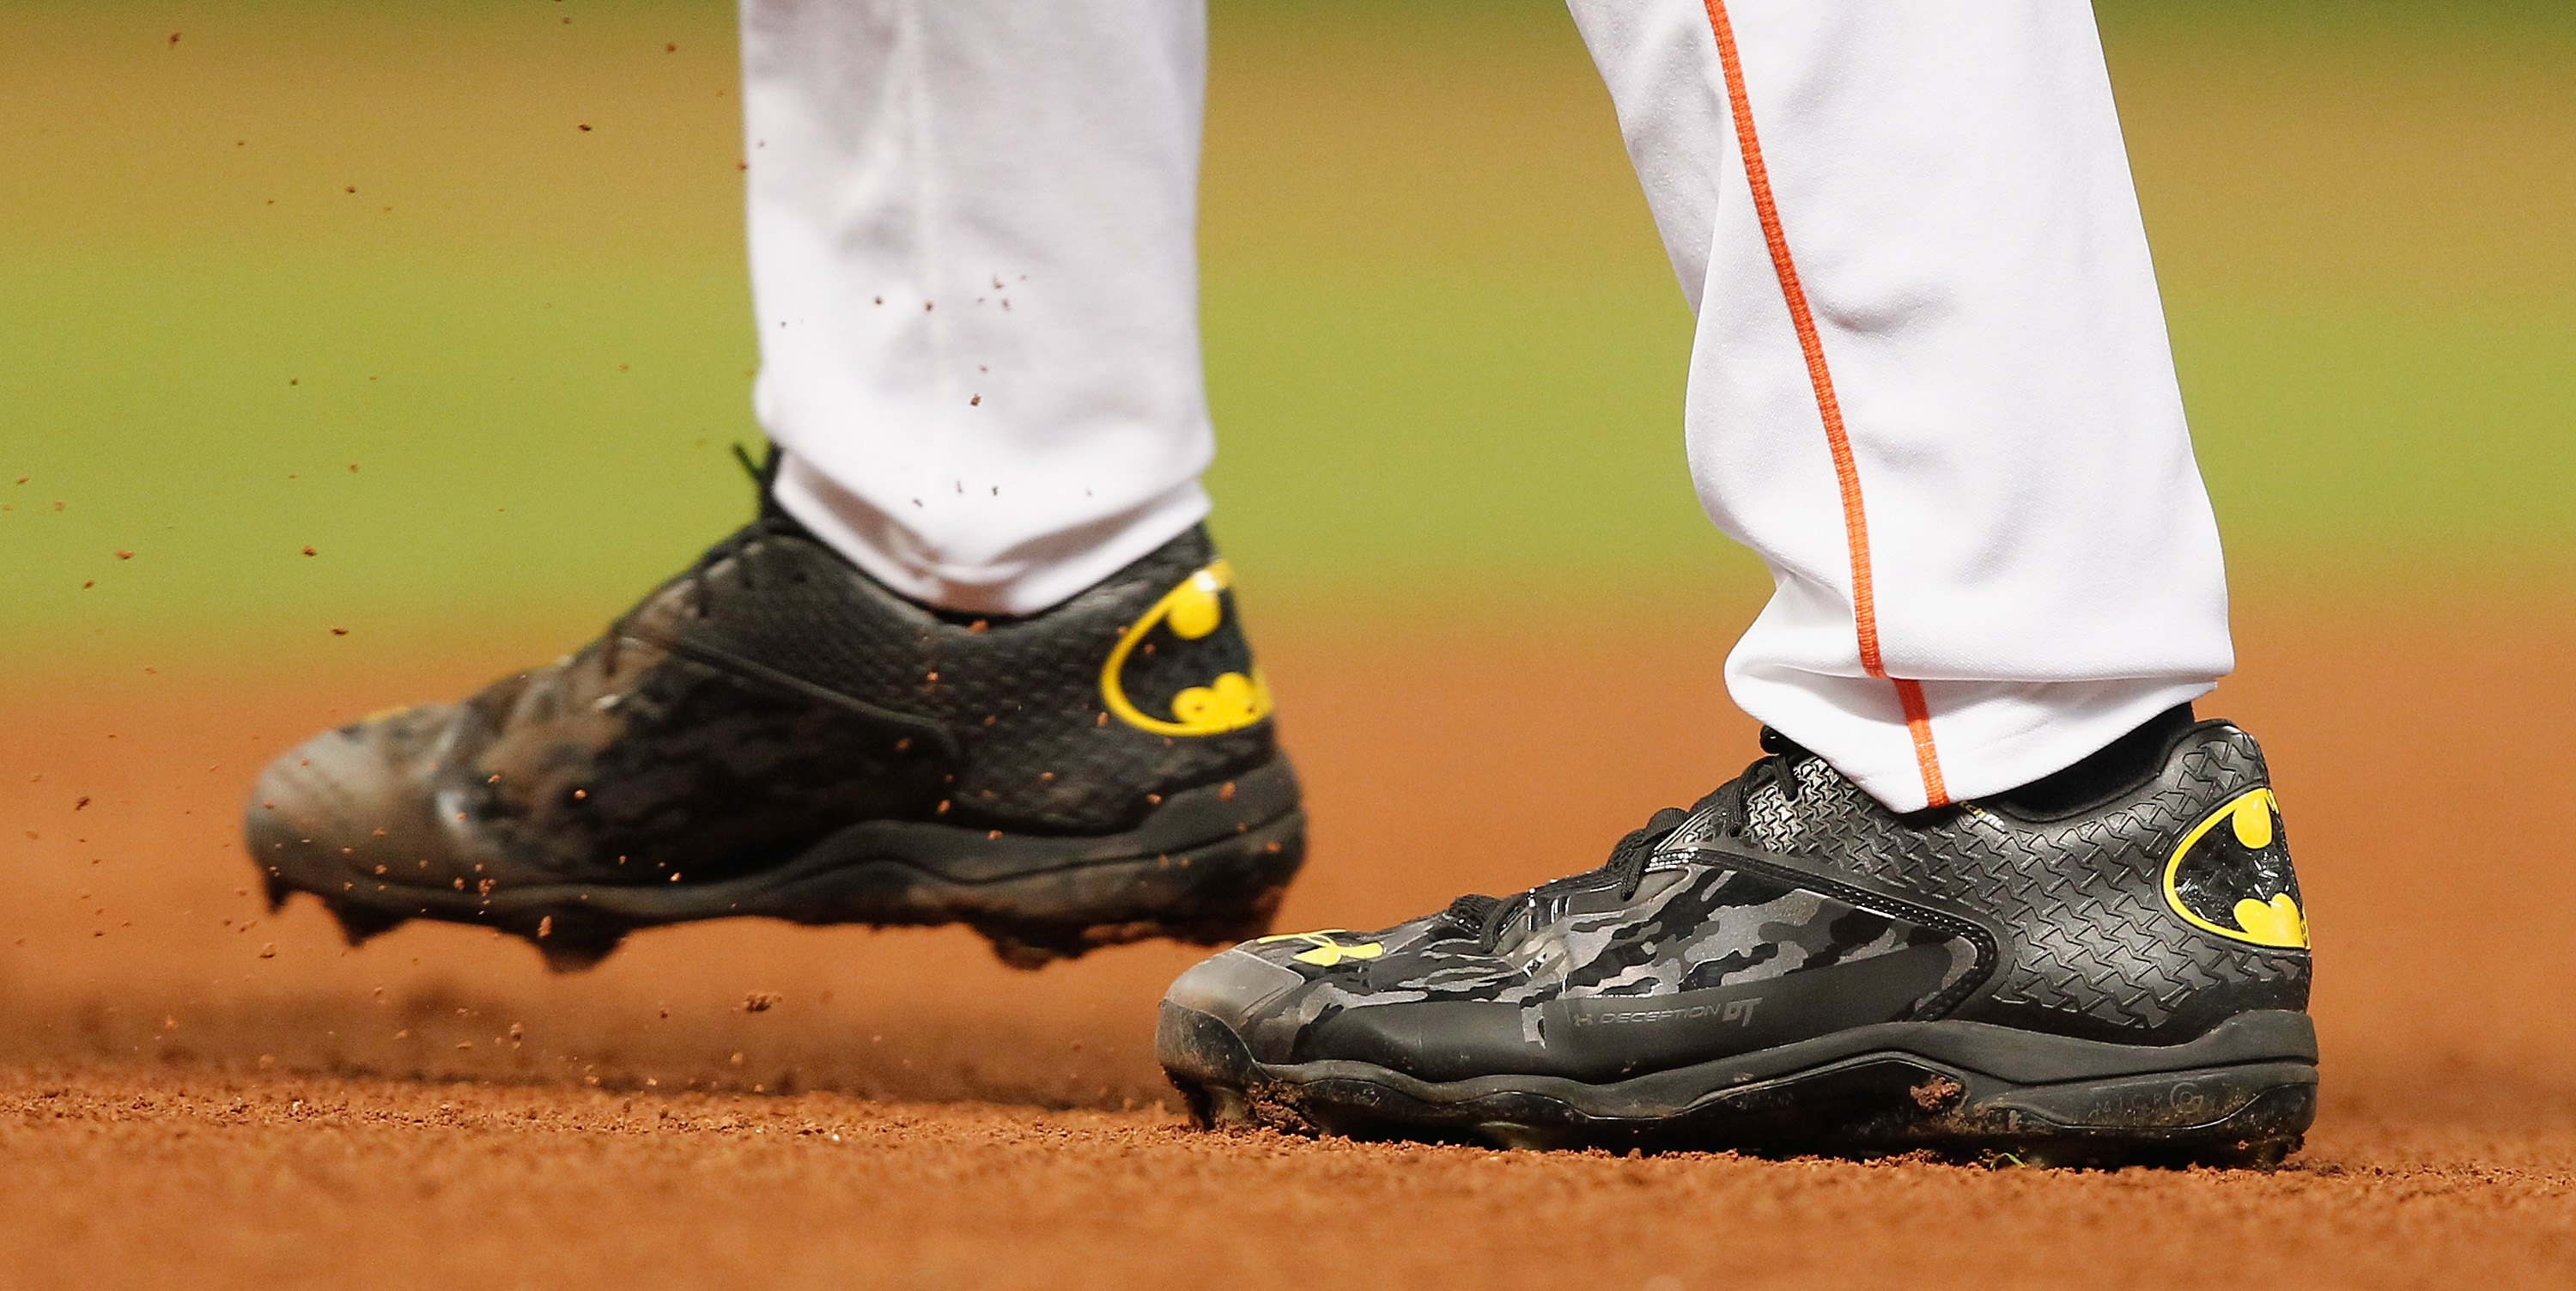 """HOUSTON, TX - MAY 18: Lance McCullers #43 of the Houston Astros throws in his Under Armour """"Batman"""" shoes against the Oakland Athletics at Minute Maid Park on May 18, 2015 in Houston, Texas. (Photo by Bob Levey/Getty Images)"""